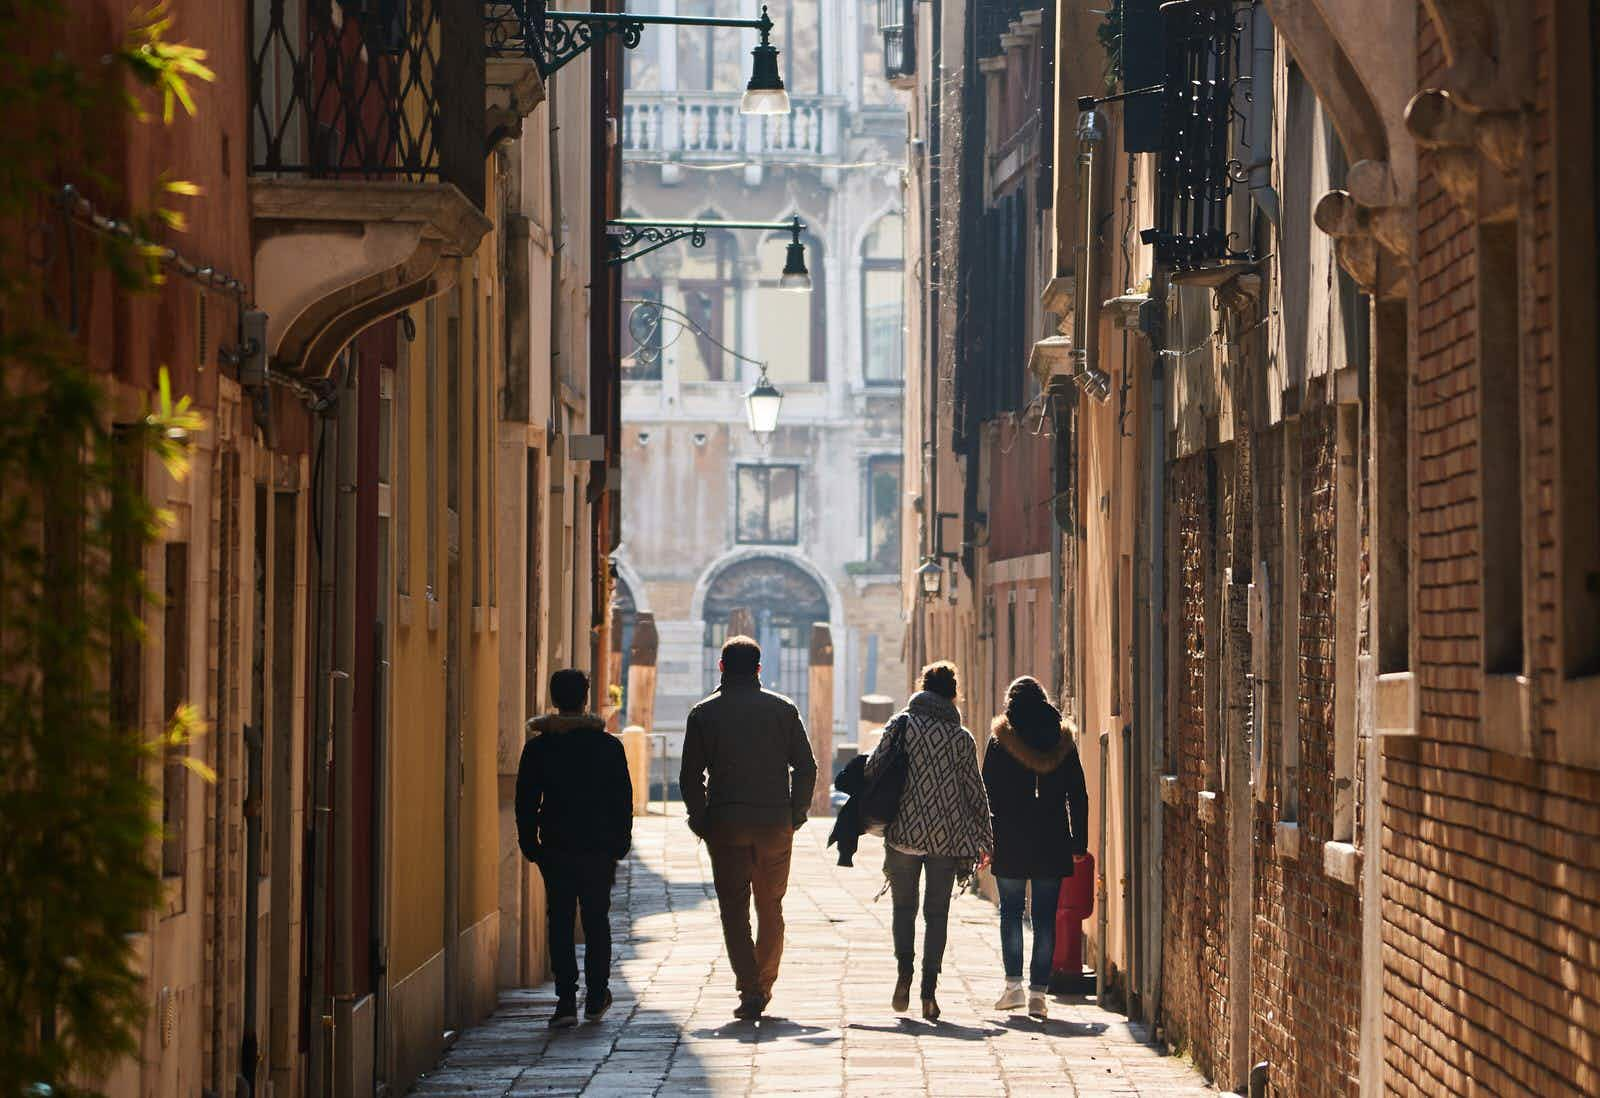 Venice, Italy - Febuary 19, 2016: Walking people in Venice. Venice is a city famous for its settings, archtecture and artwork. A part of Venice is resignated as a World Heritage site.